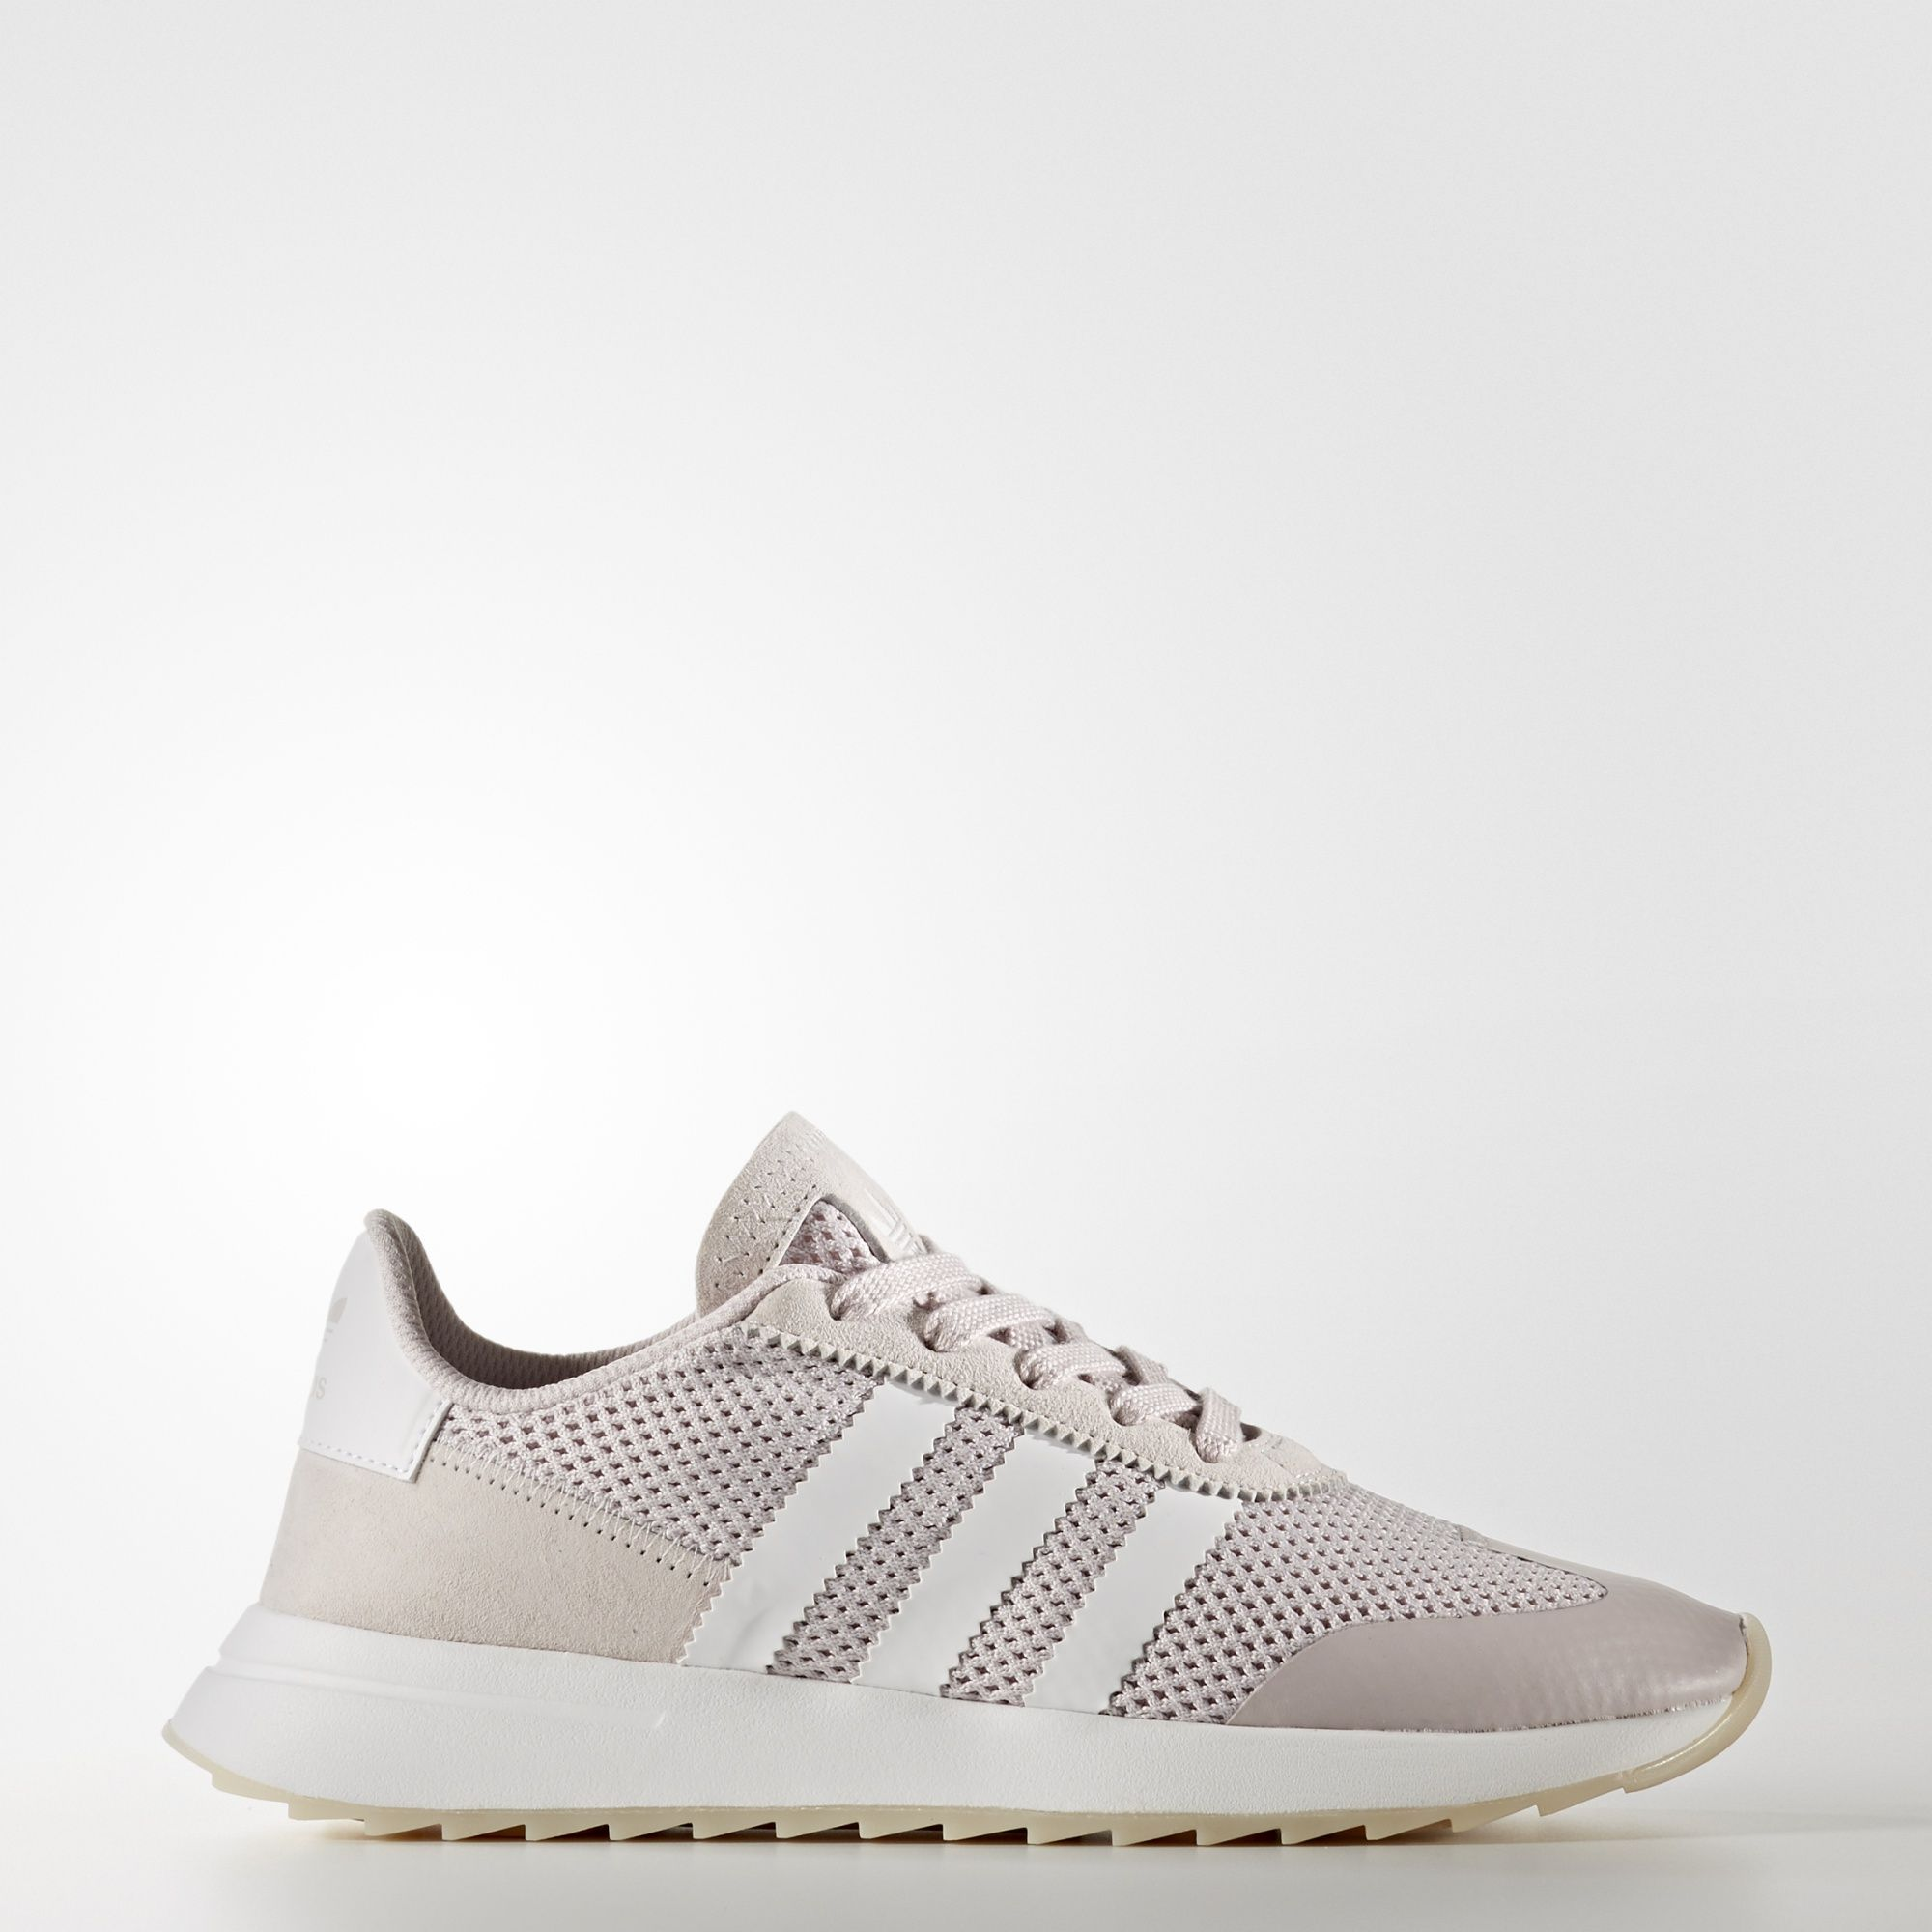 14e7094f4e86 Bringing adidas archival style into the future